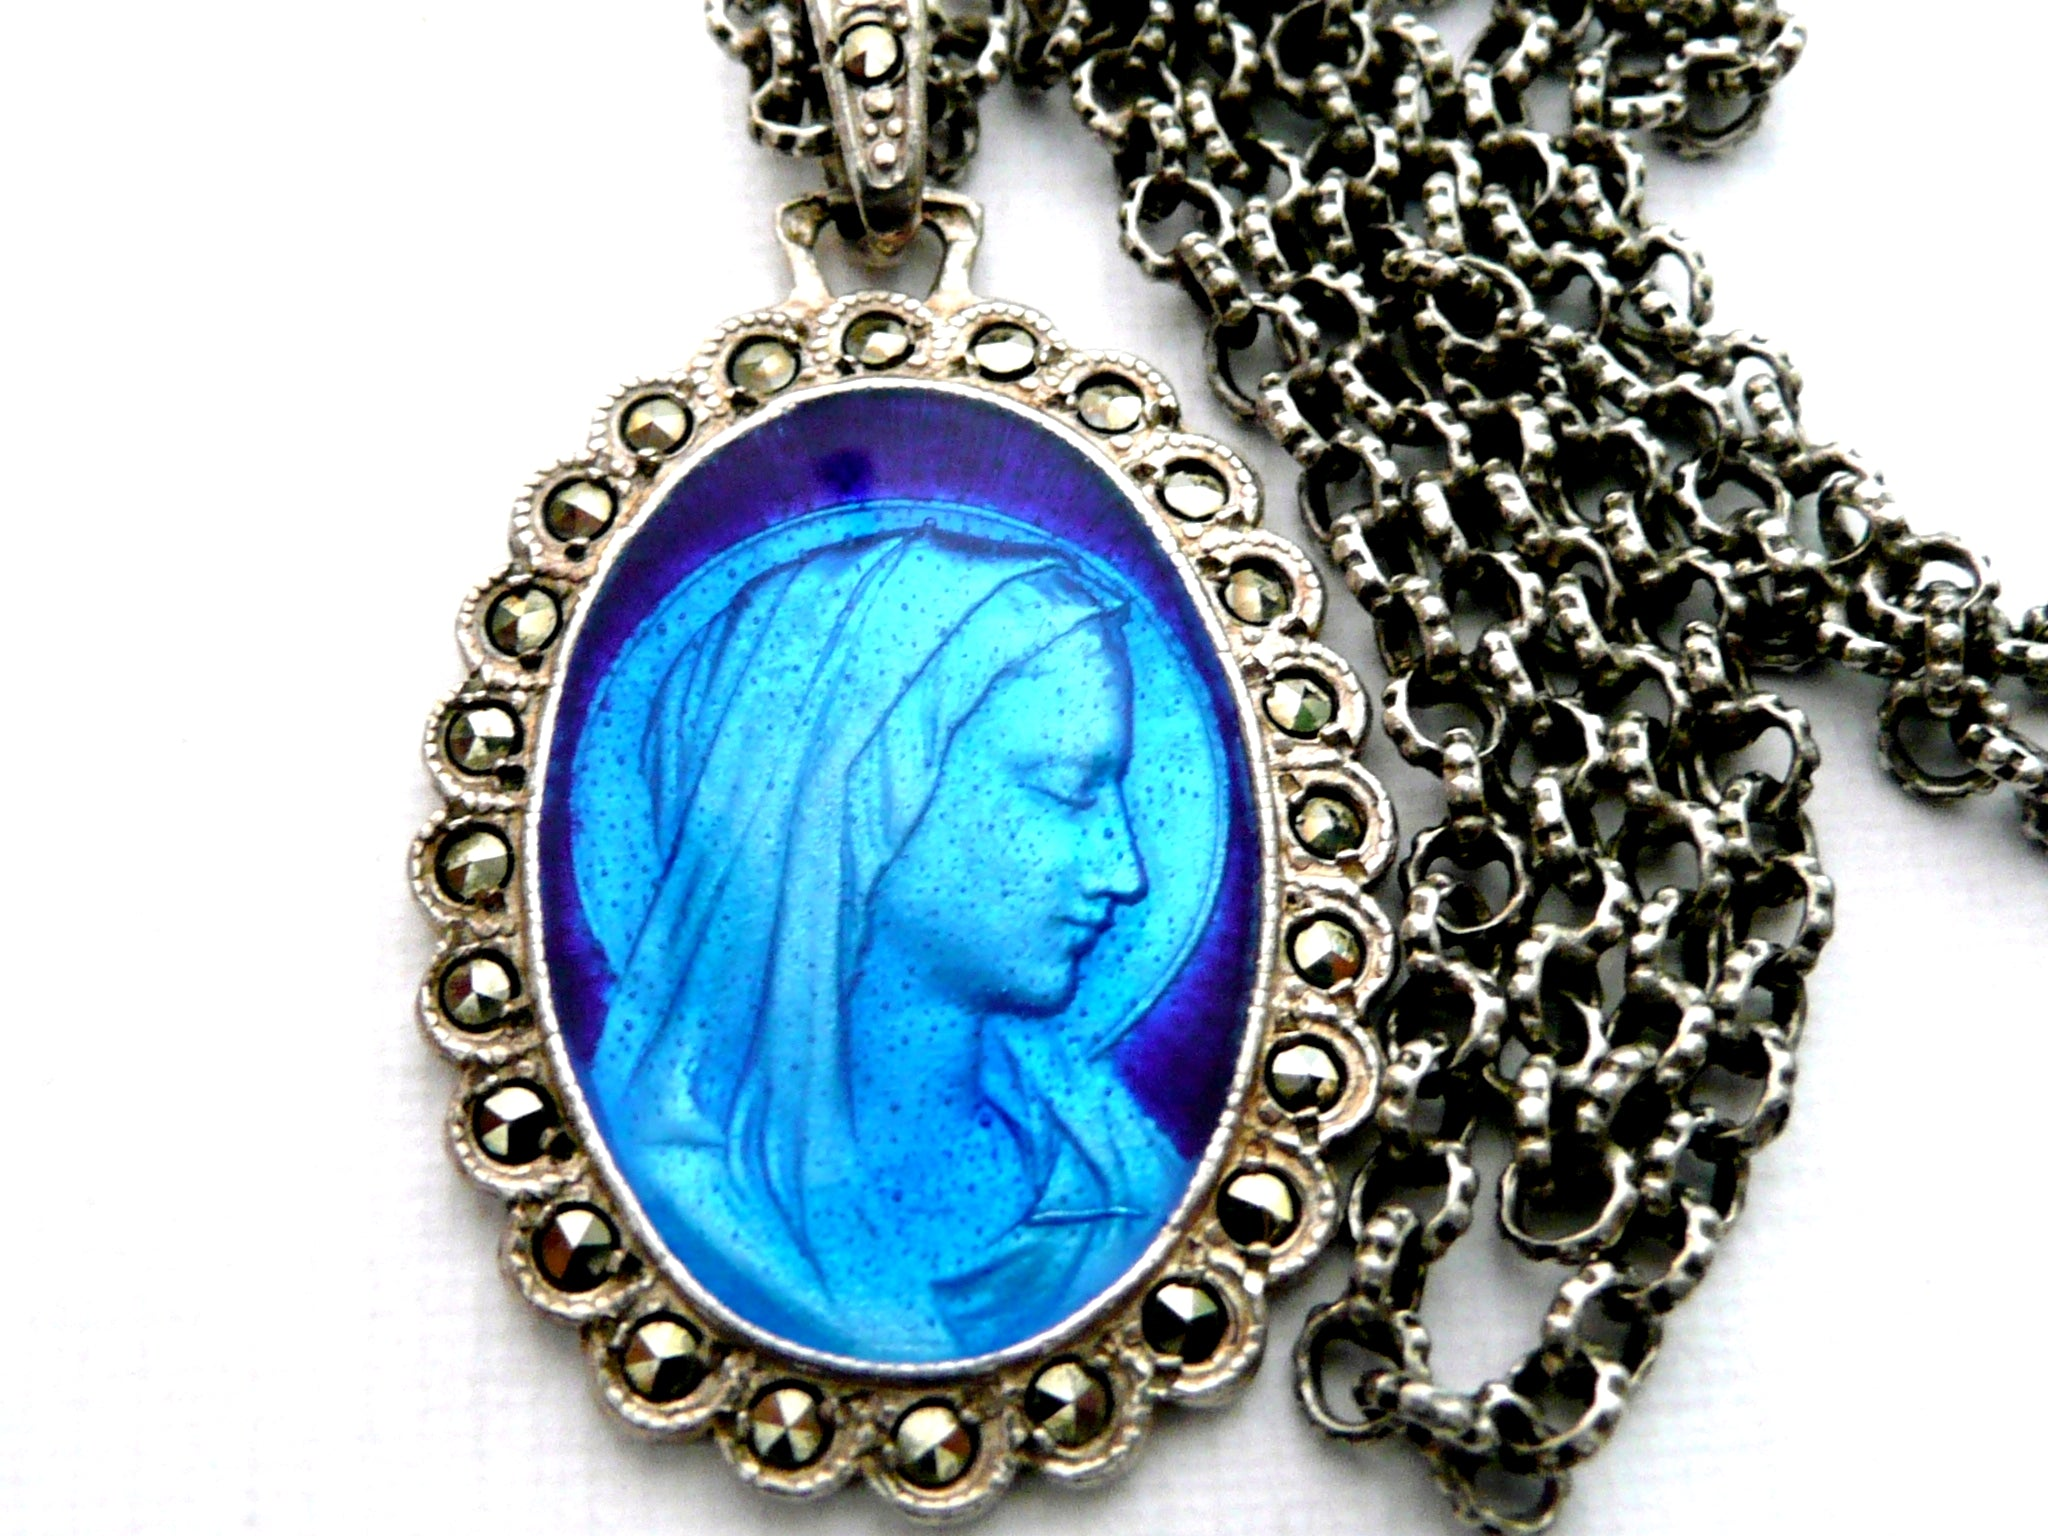 French Our Lady of Lourdes Silver Medal Vintage Our Lady of Lourdes Necklace